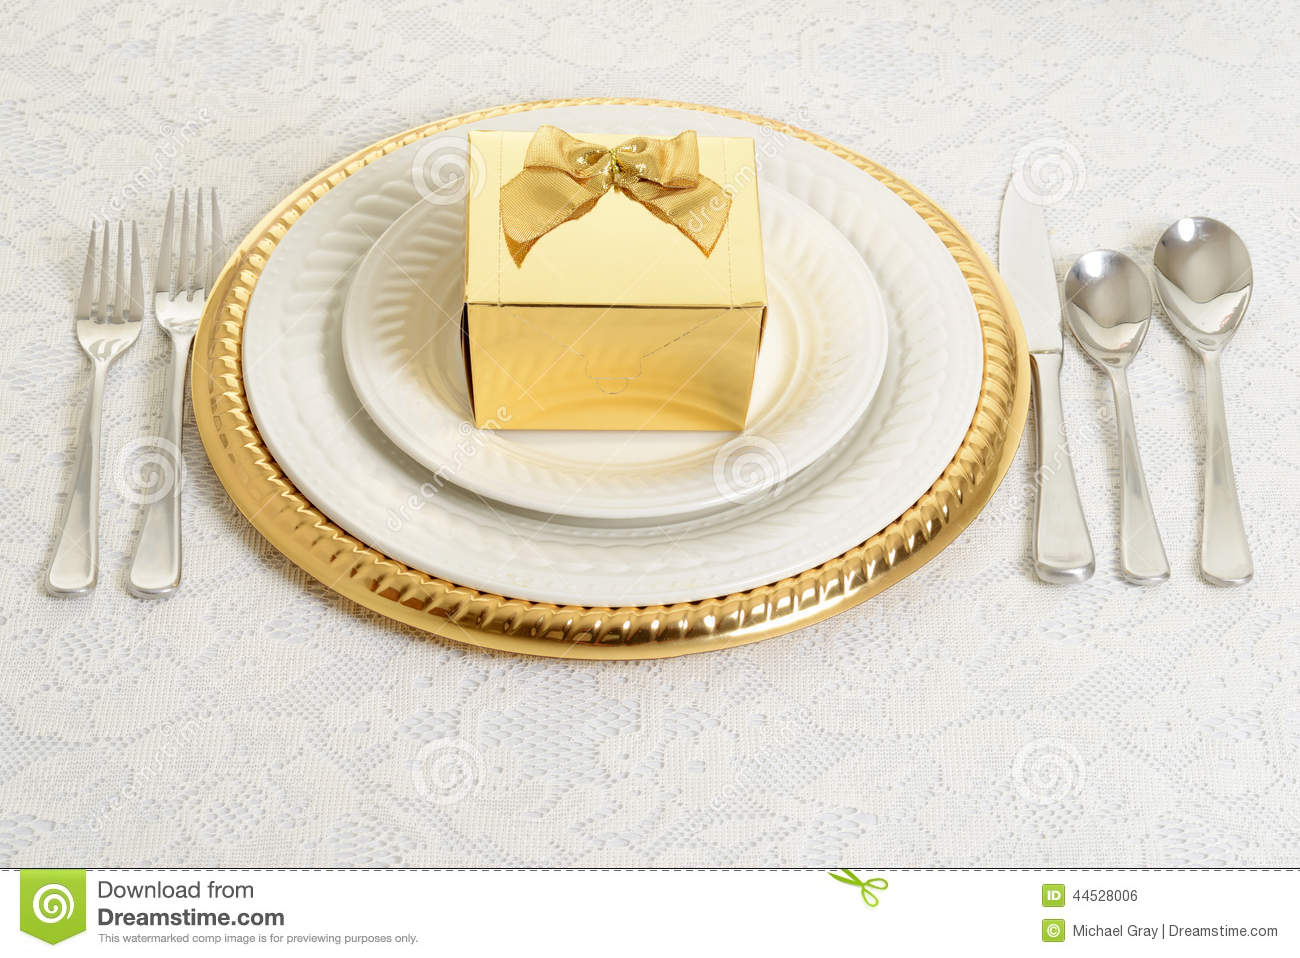 Gold and silver table setting  sc 1 st  Dreamstime.com & Gold And Silver Table Setting Stock Photo - Image of empty cutlery ...